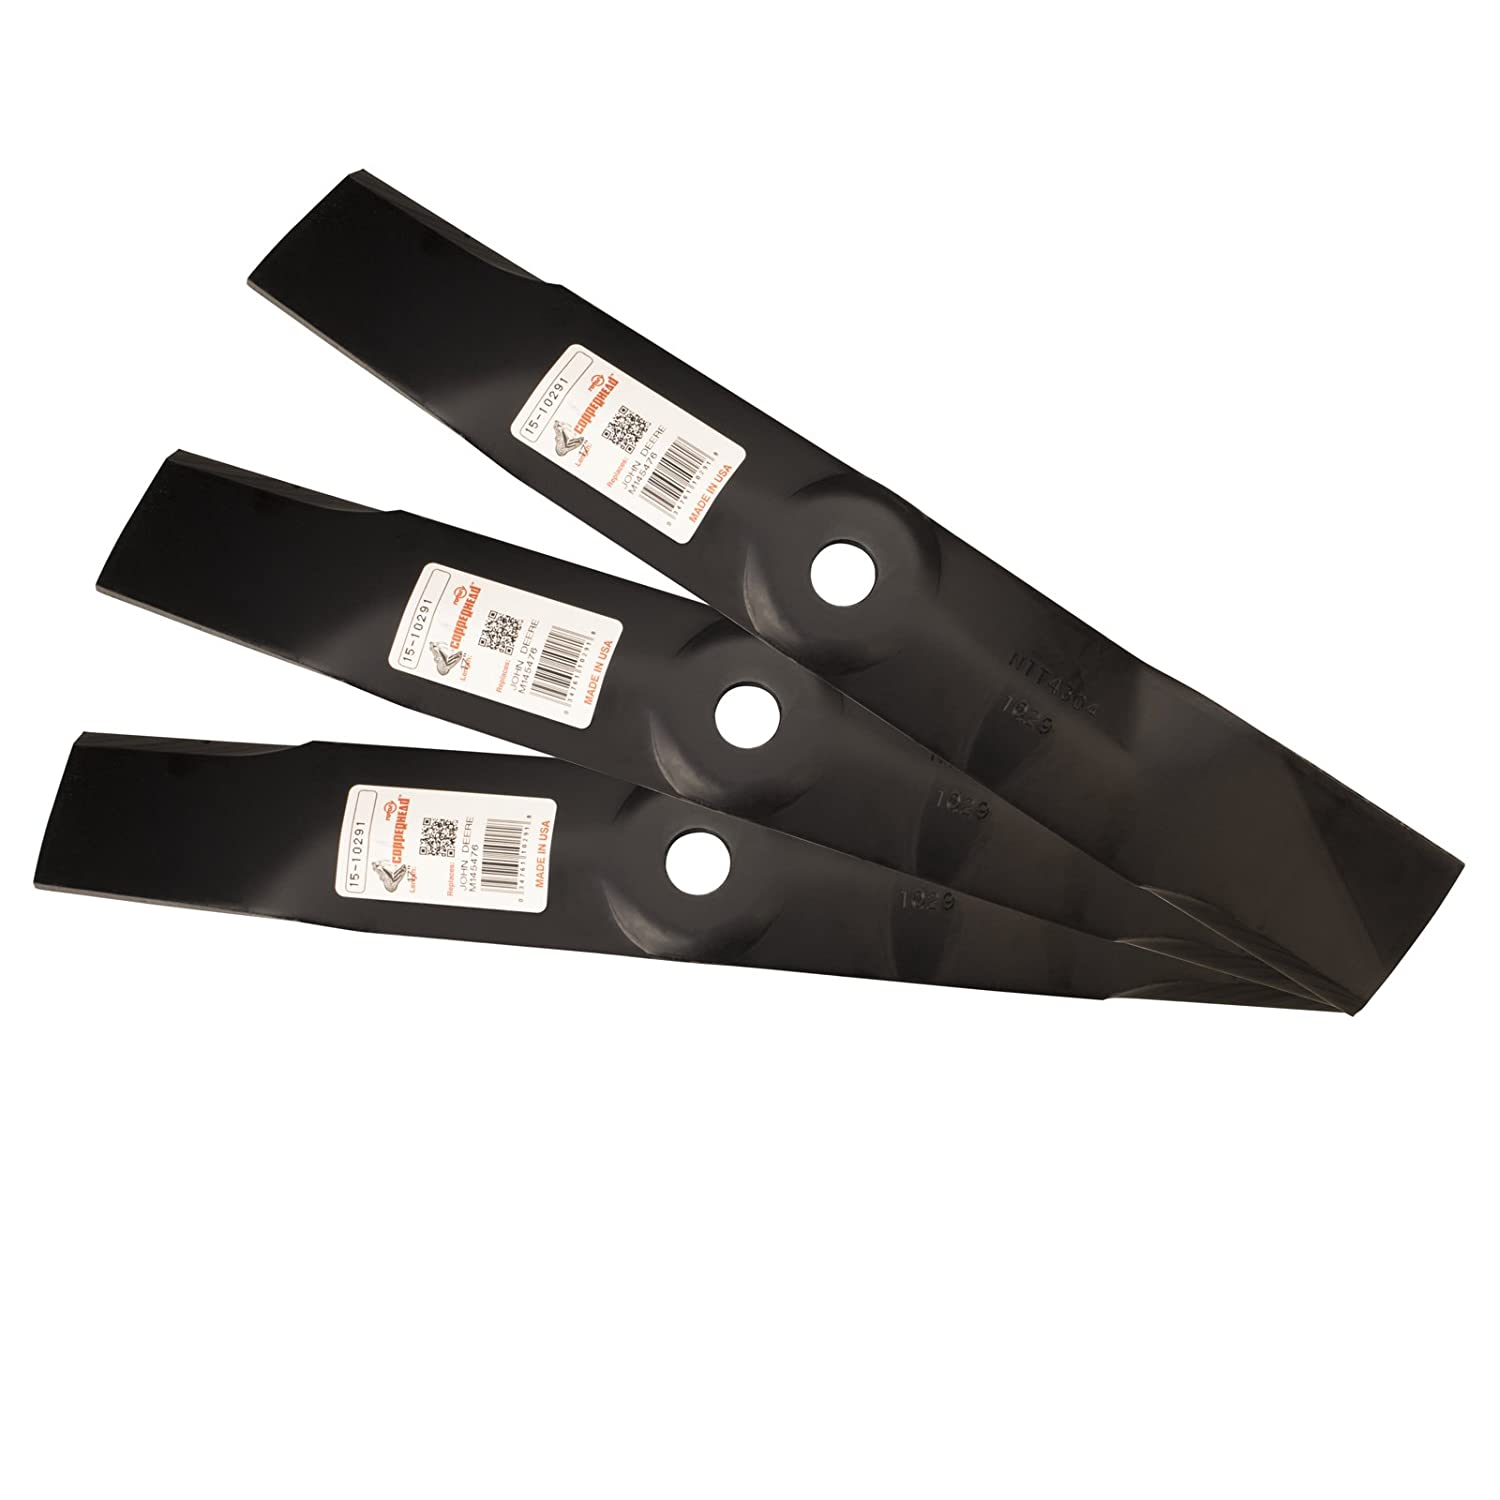 """Three (3) Pack Rotary Lawn Mower Blades Replace John Deere M127500 M145476 Requires (3) Blades For 48"""" Deck"""